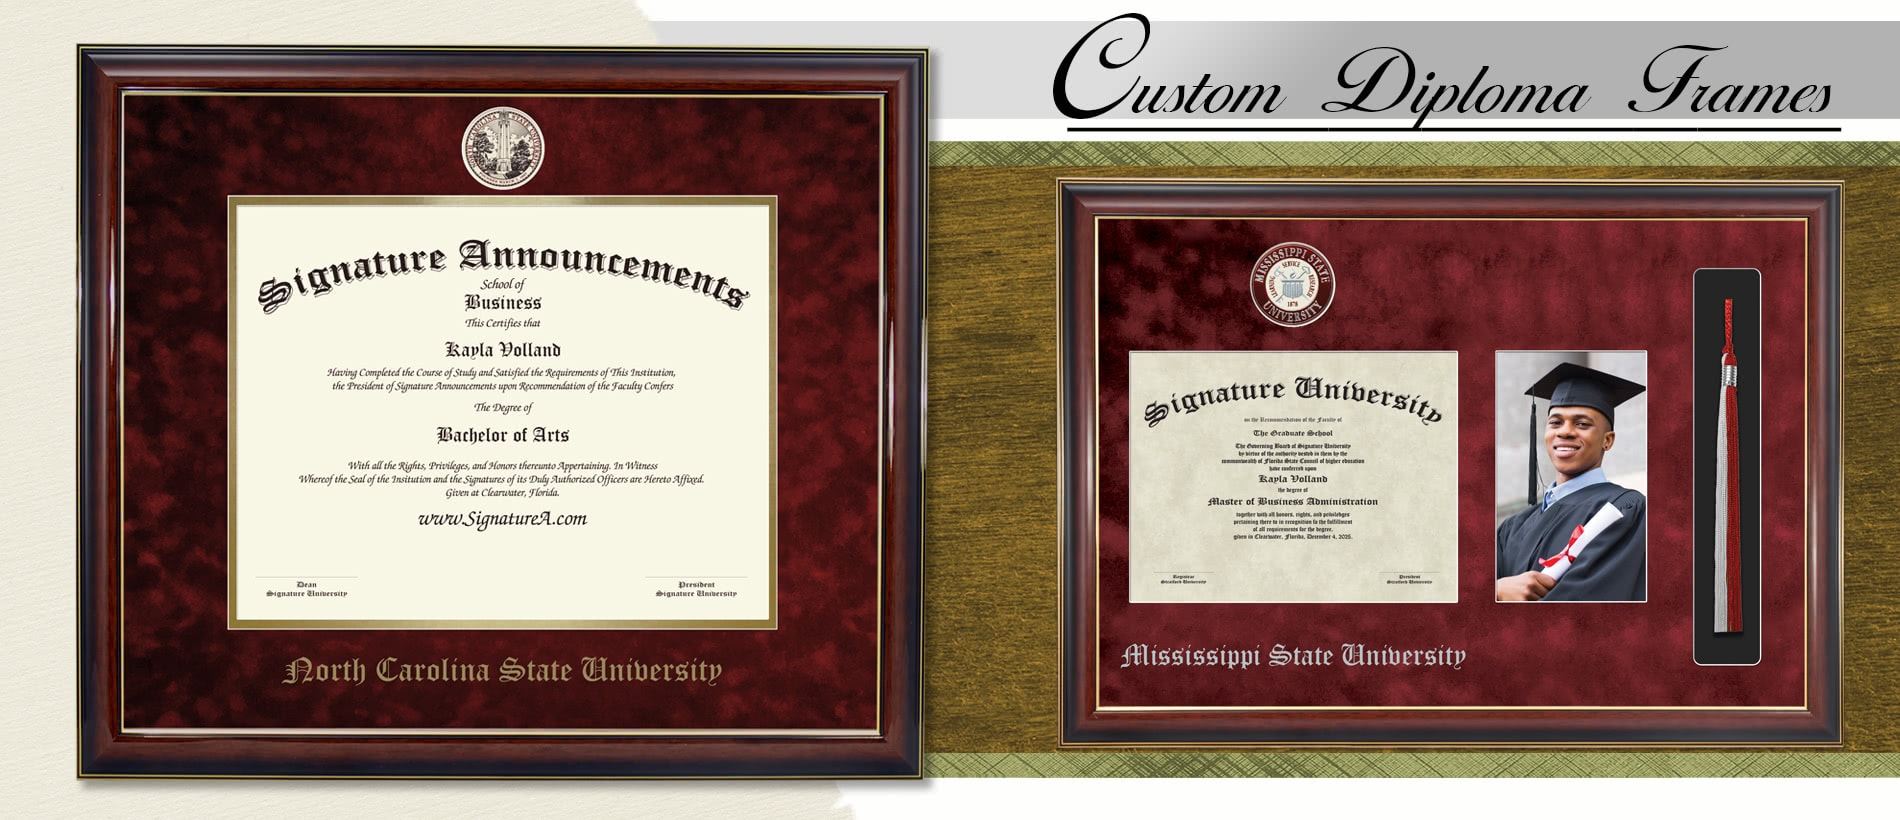 UH Cherry, 16 x 16 Undergraduate and Graduate Graduation Diploma Frame with Sculpted Foil Seal Signature Announcements University of Houston